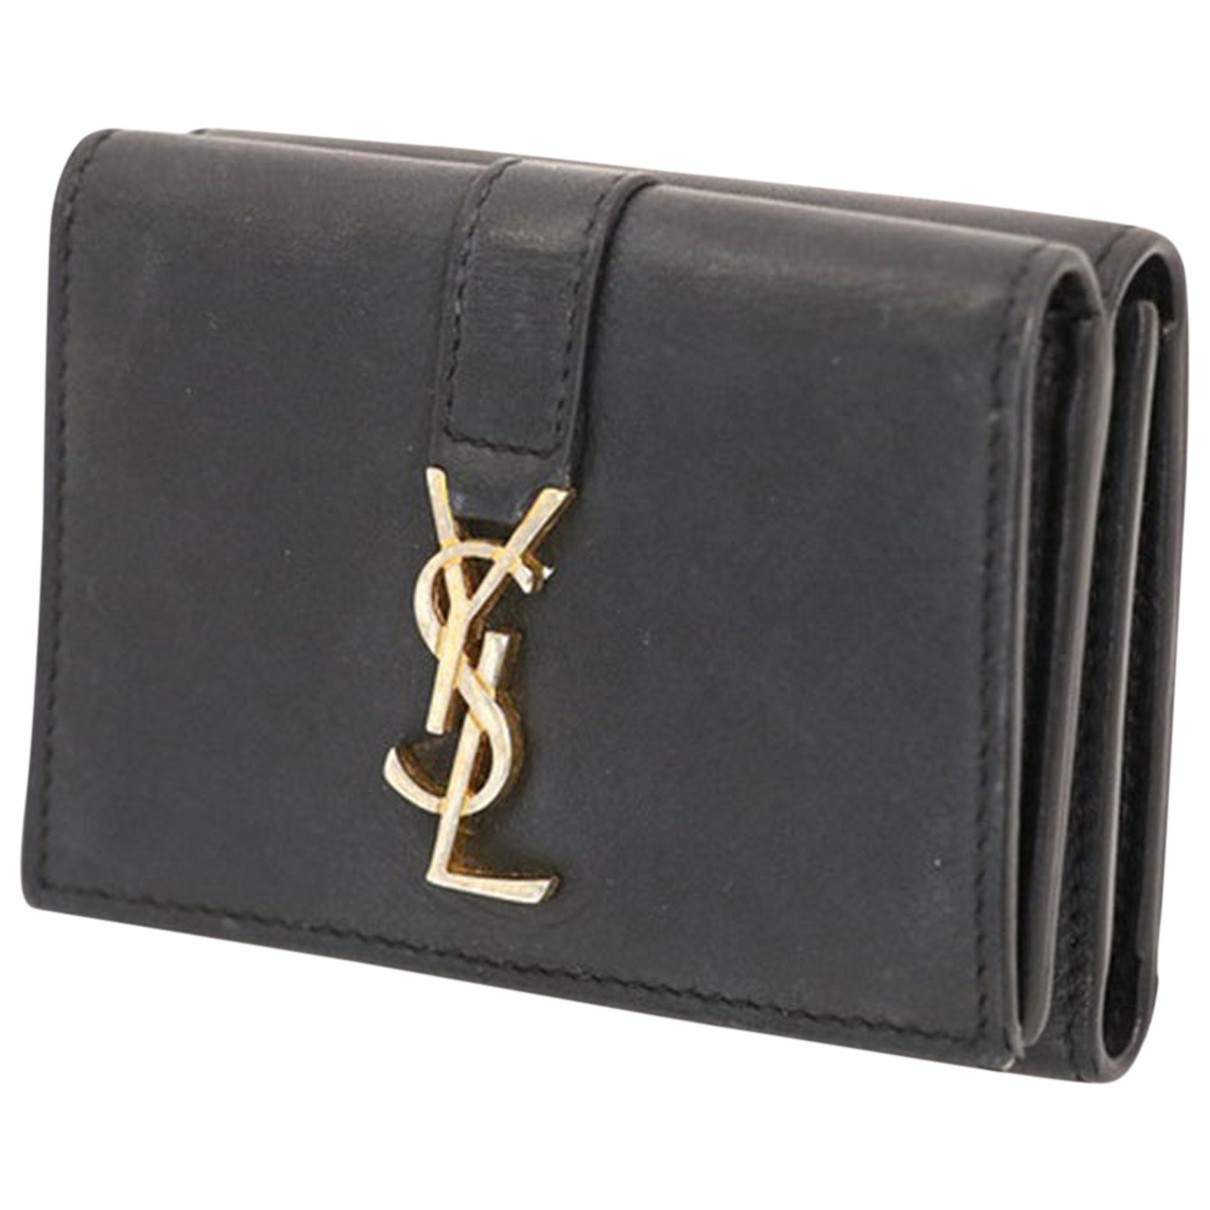 Saint Laurent Ysl line Black Leather wallet for Women N